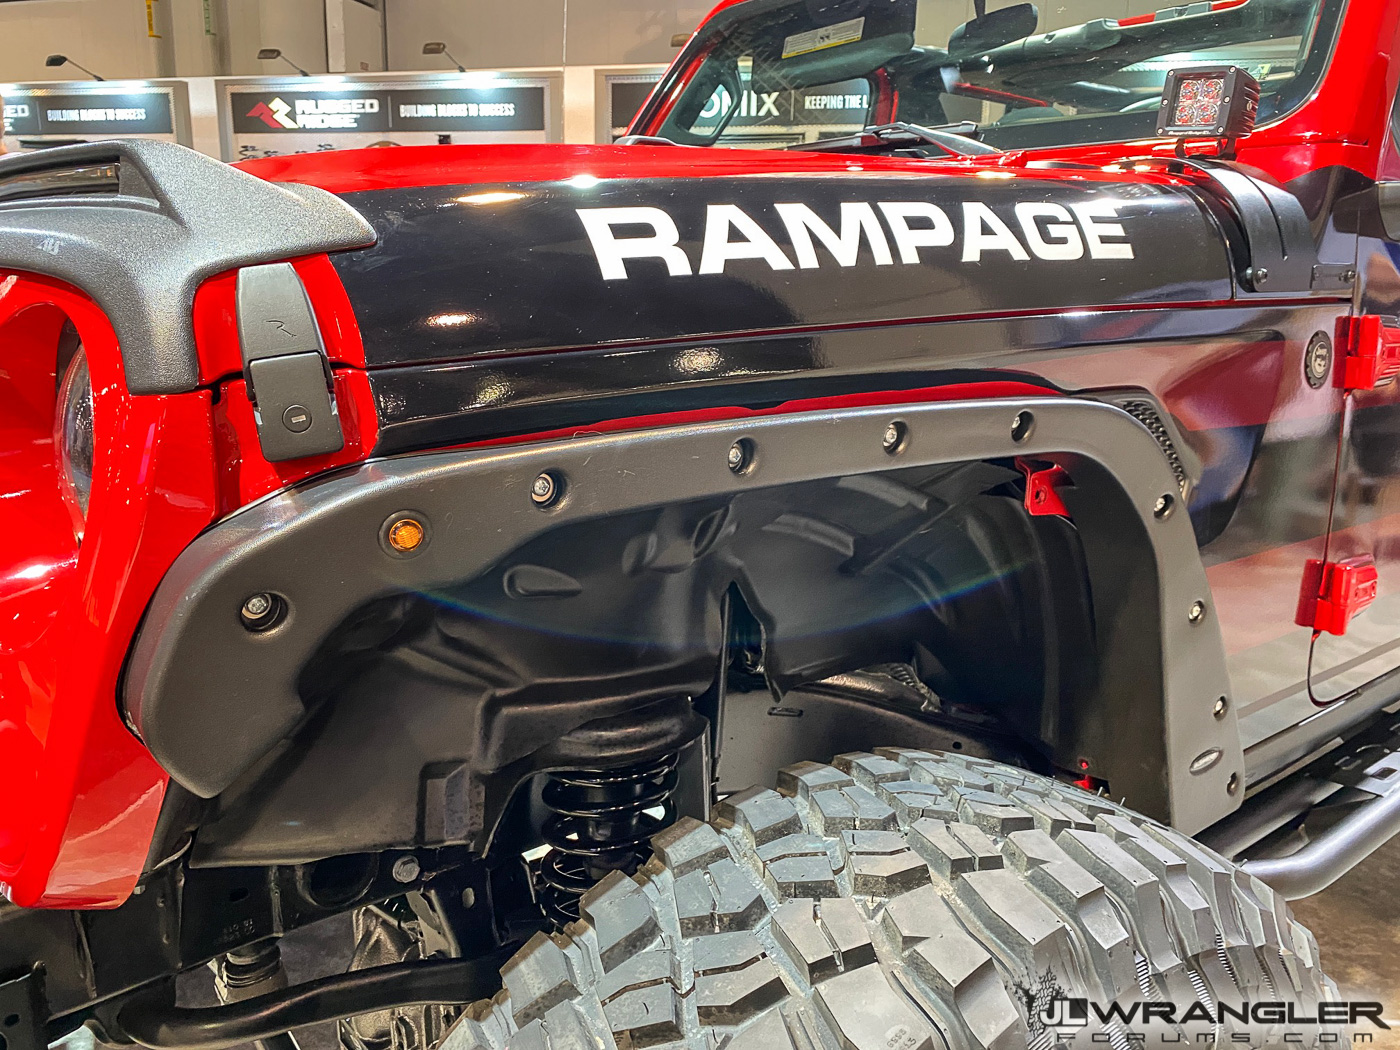 Rampage-JLU-Jeep-Wrangler-SEMA-Build-6.jpg